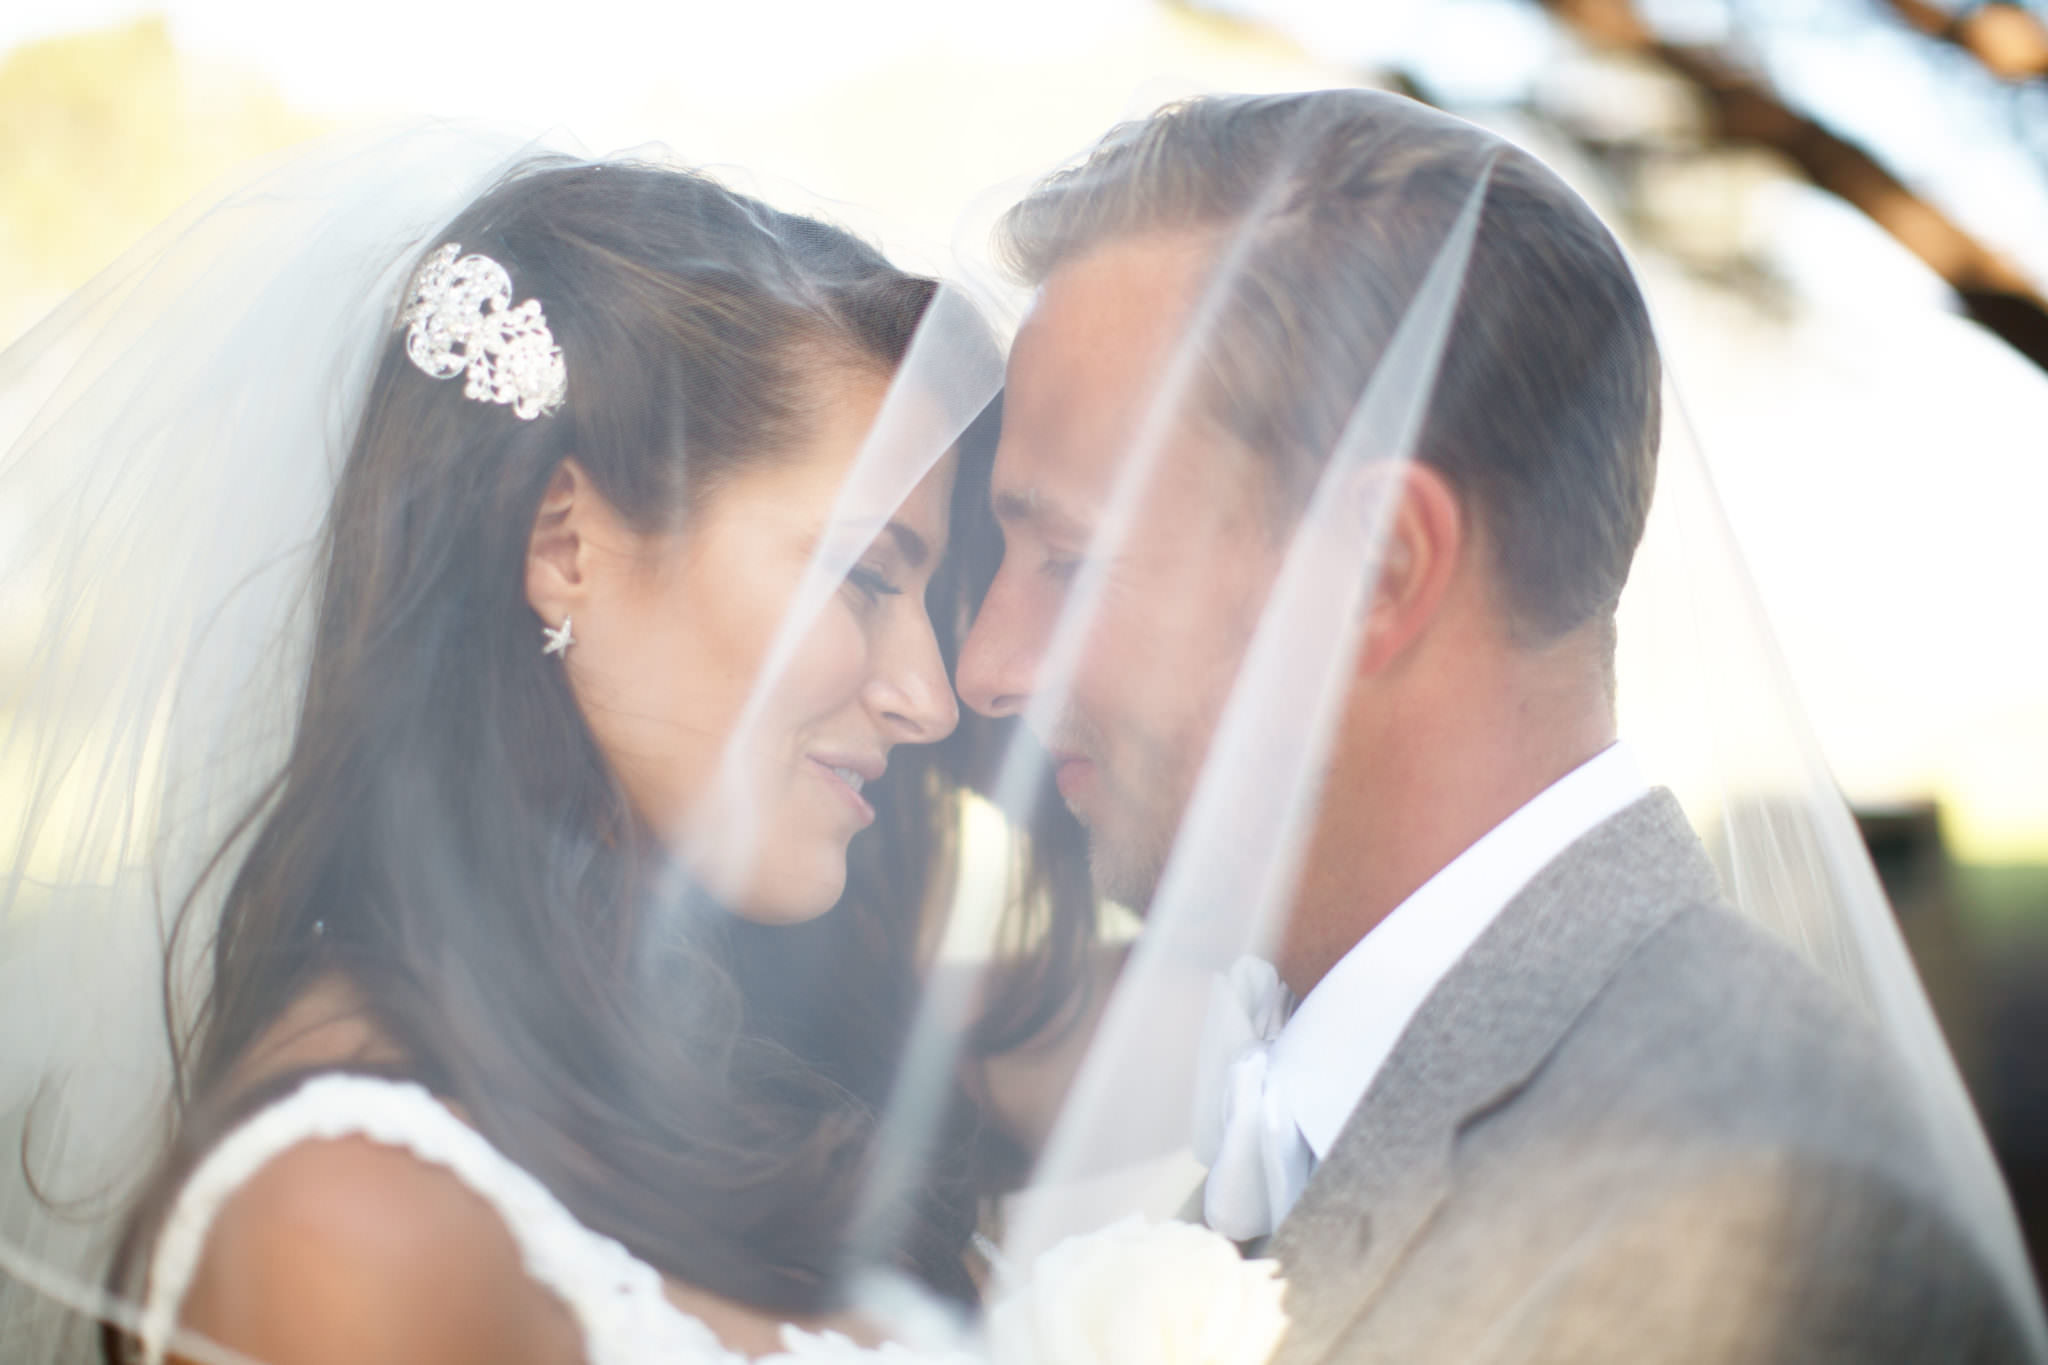 What to look for when hiring a professional wedding photographer